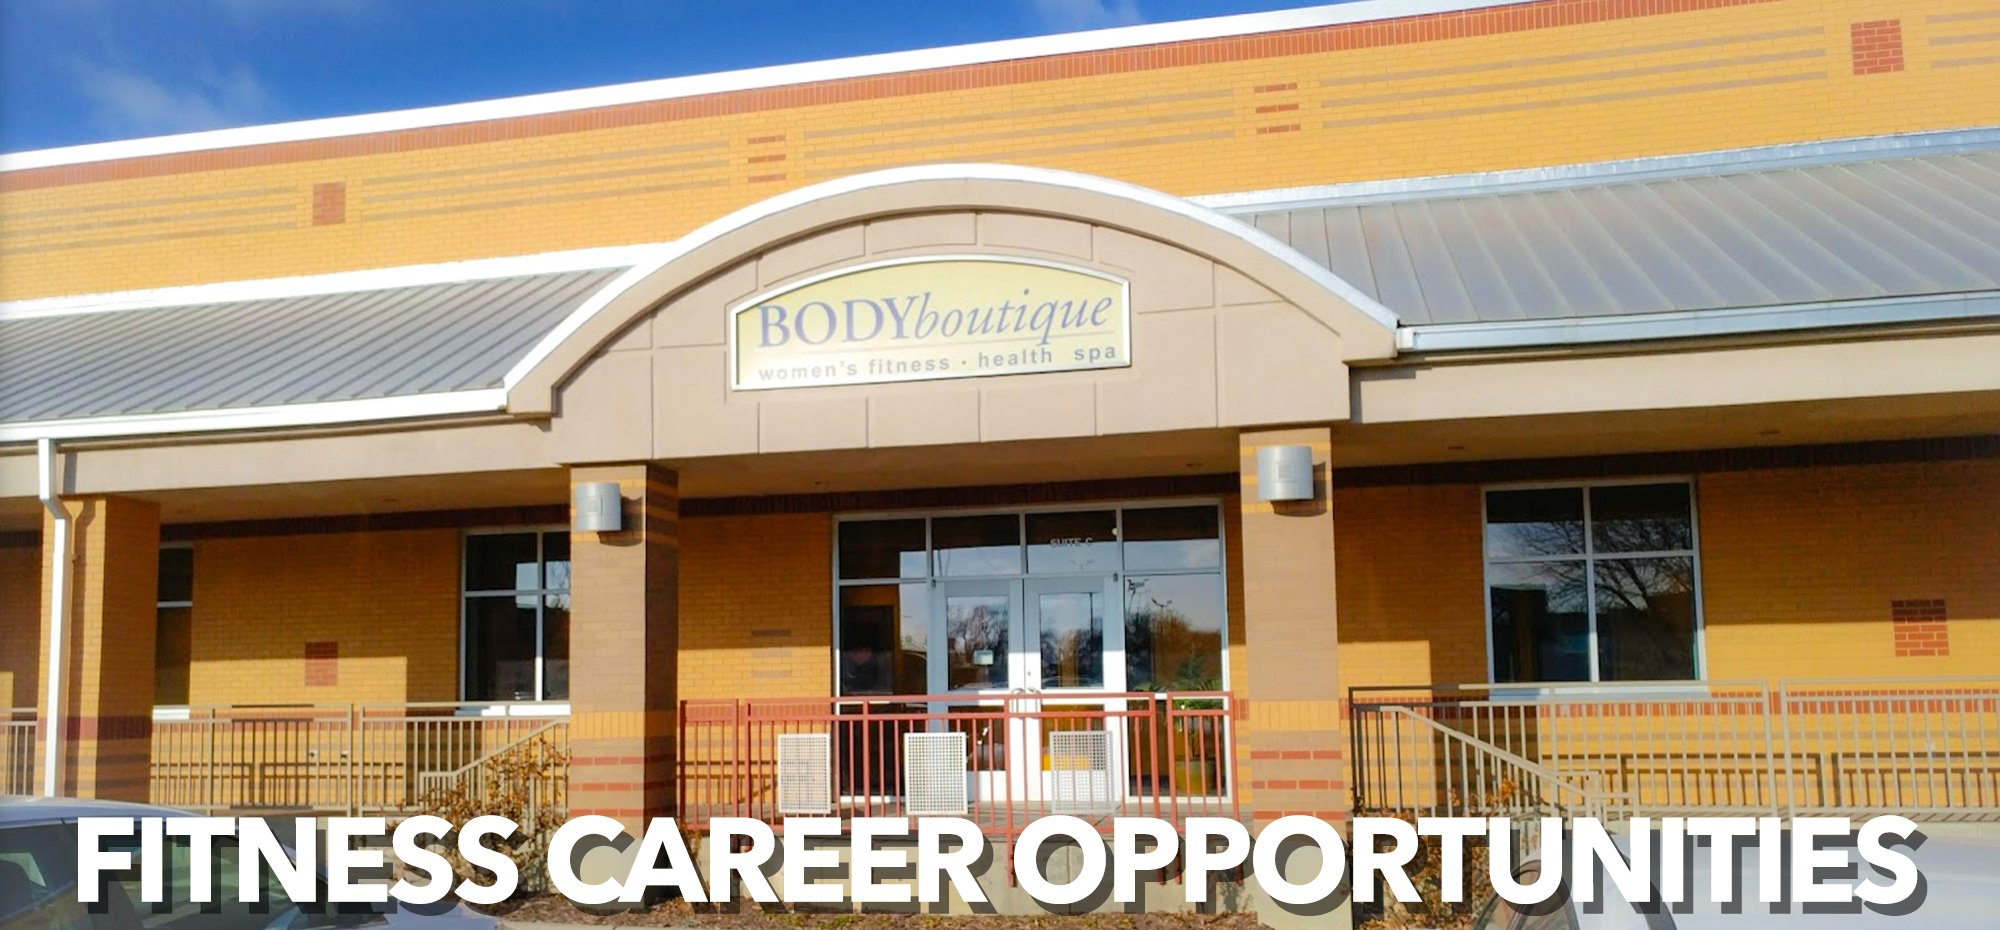 Body Boutique Fitness Store Front View